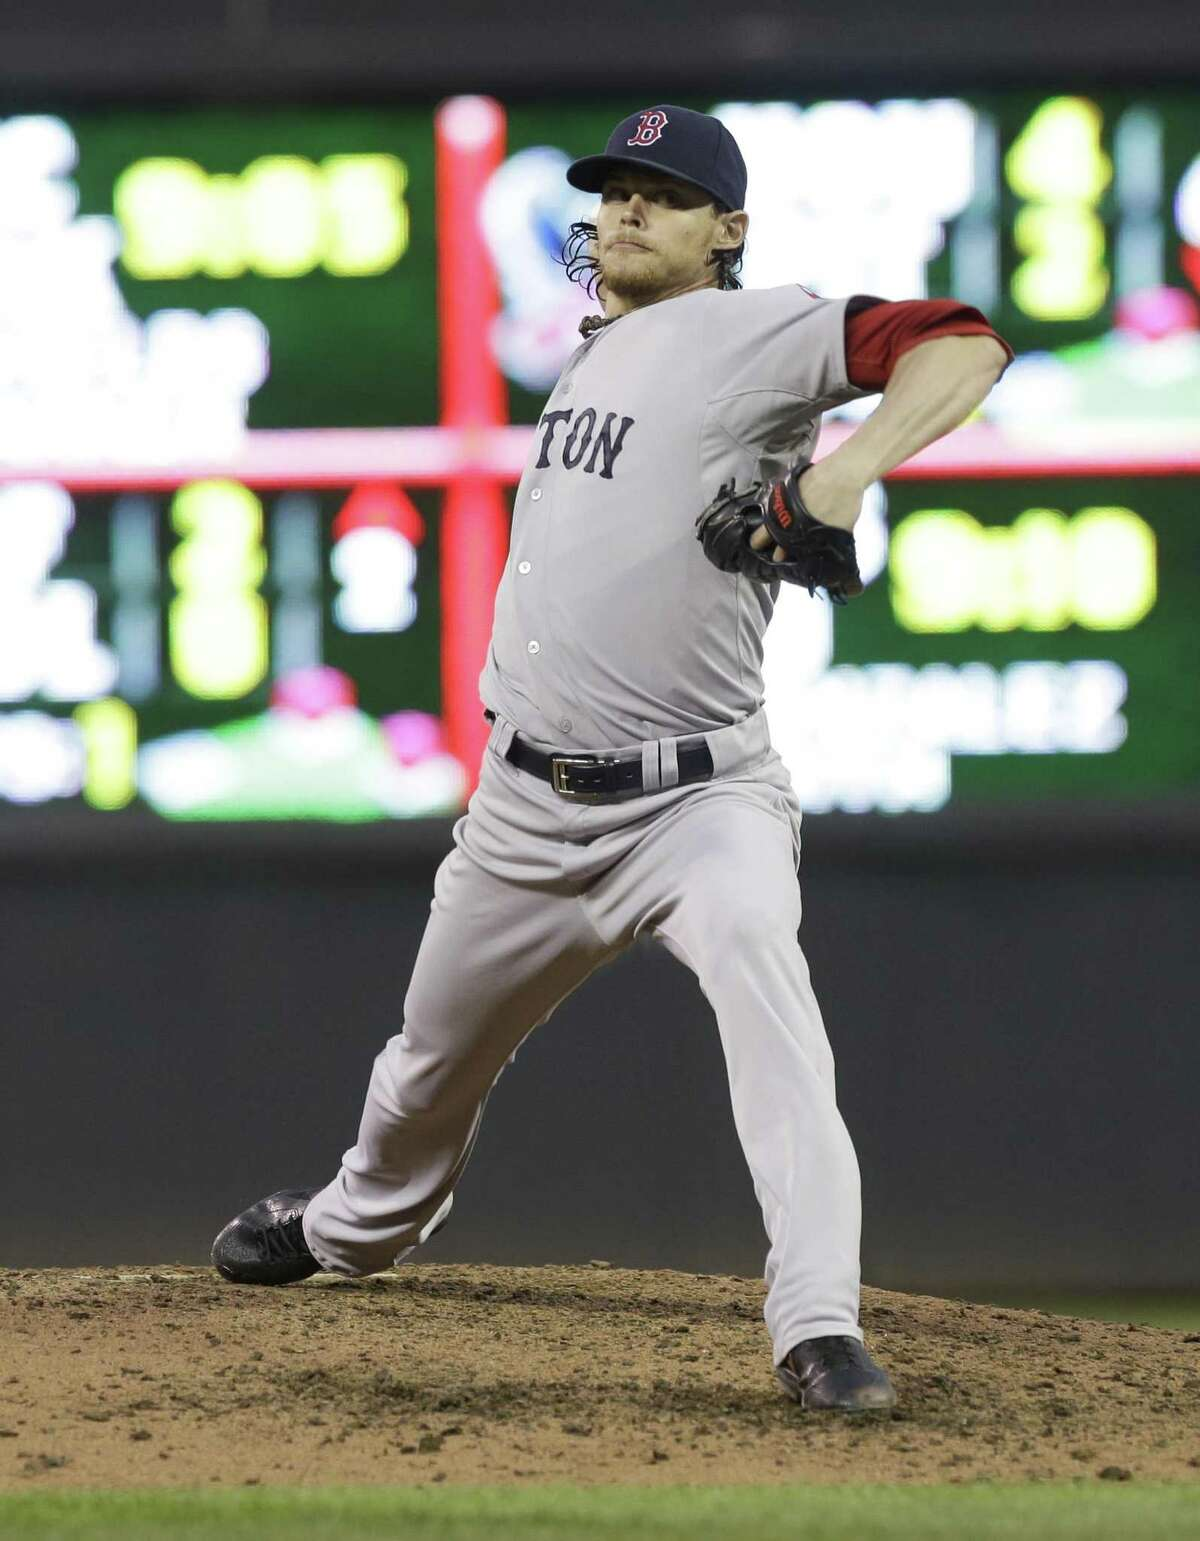 Boston Red Sox pitcher Clay Buchholz throws against the Minnesota Twins in the fourth inning of a baseball game, Friday, May 17, 2013, in Minneapolis. (AP Photo/Jim Mone)